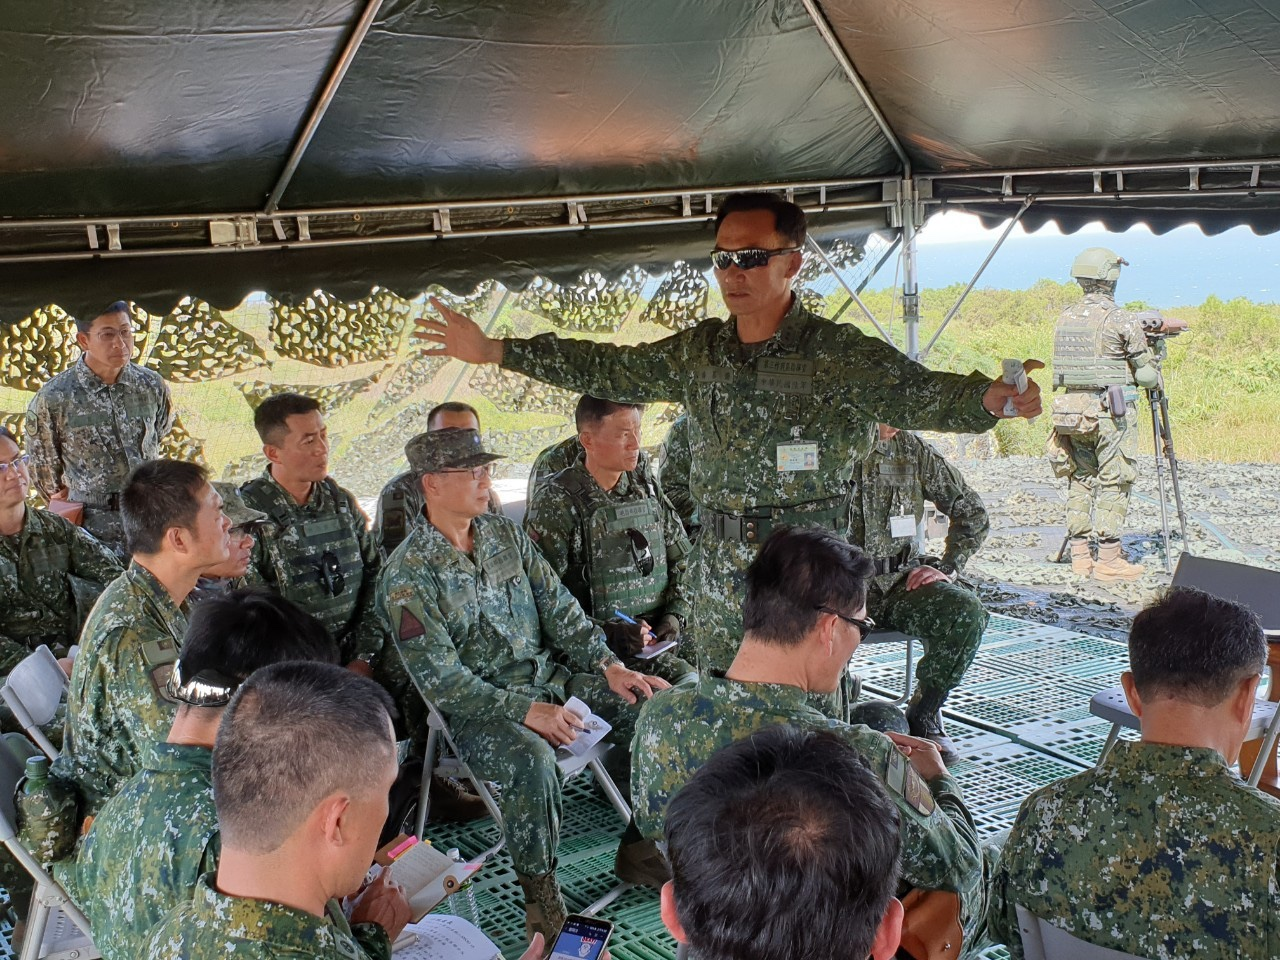 With the HK 36 coming, all theaters of operations continue their preparedness and commanders' inspection